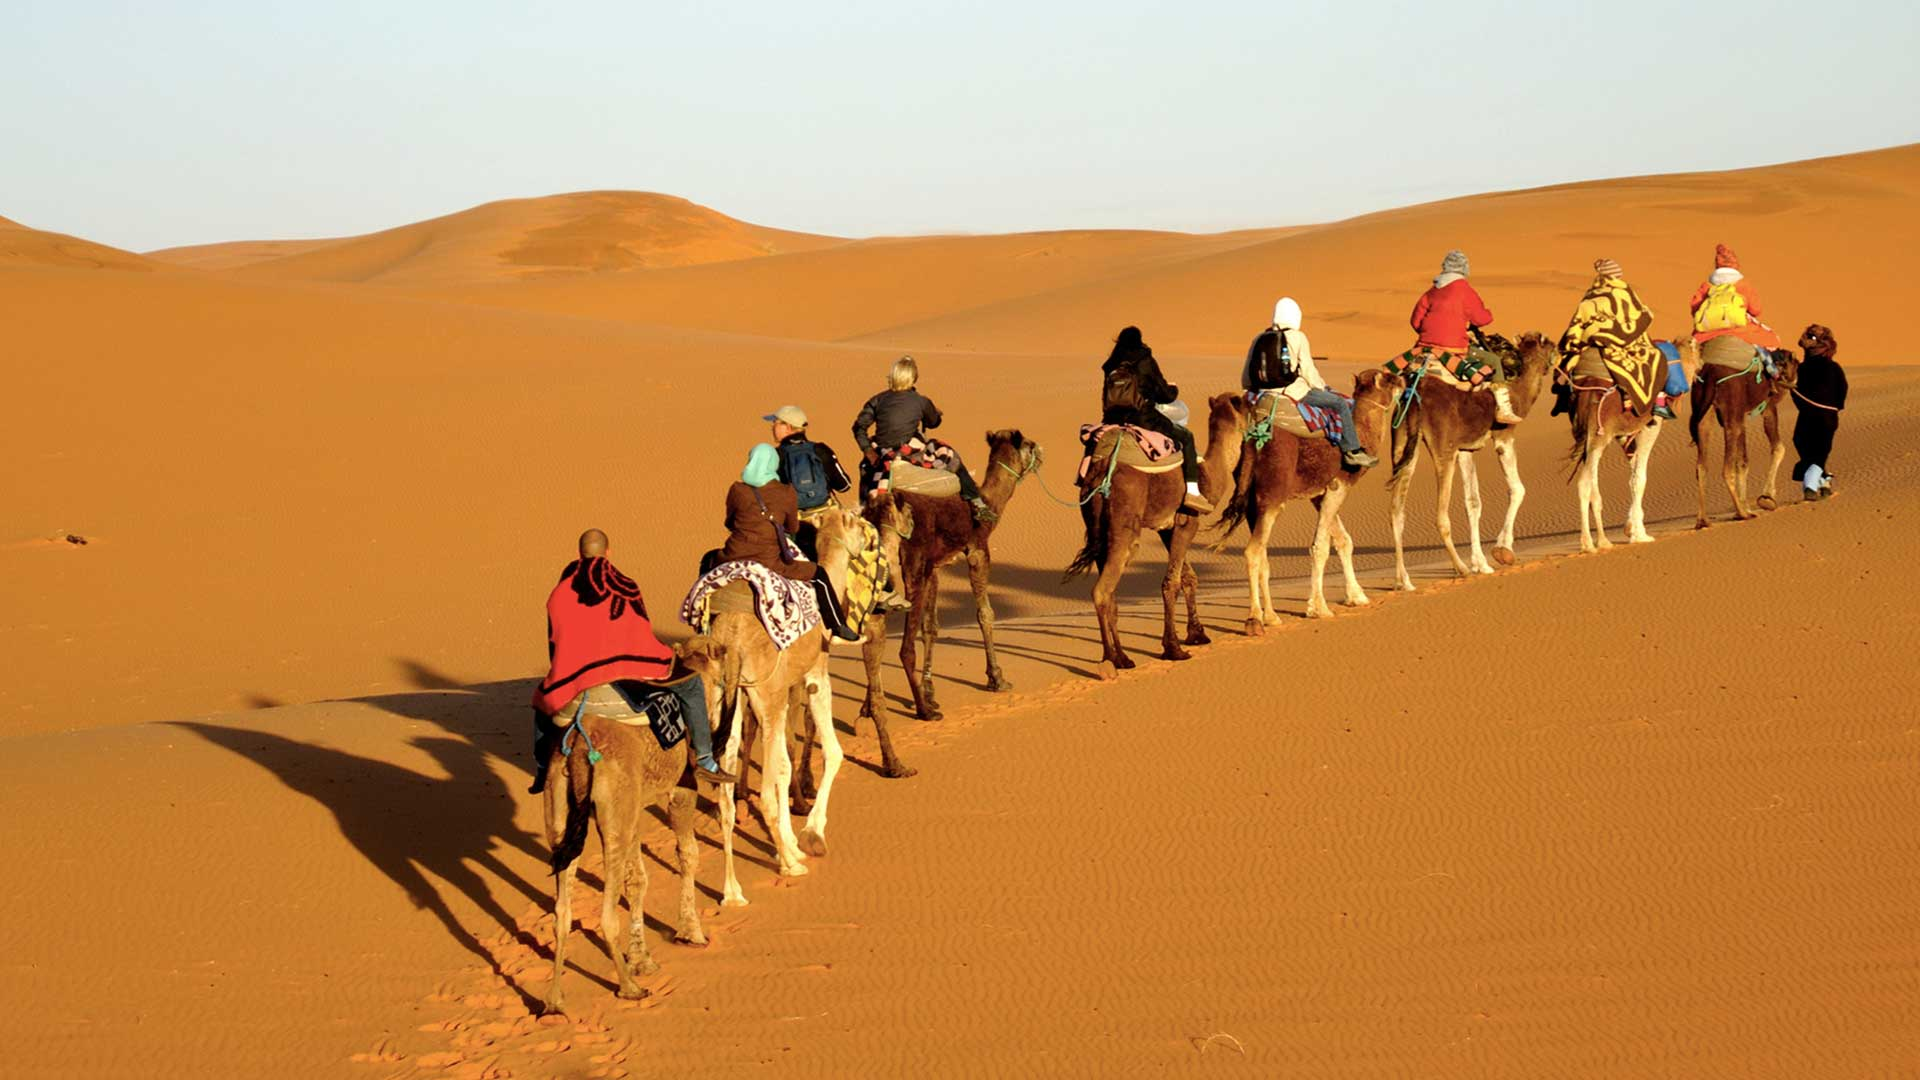 trip to Iran for excitting camel riding